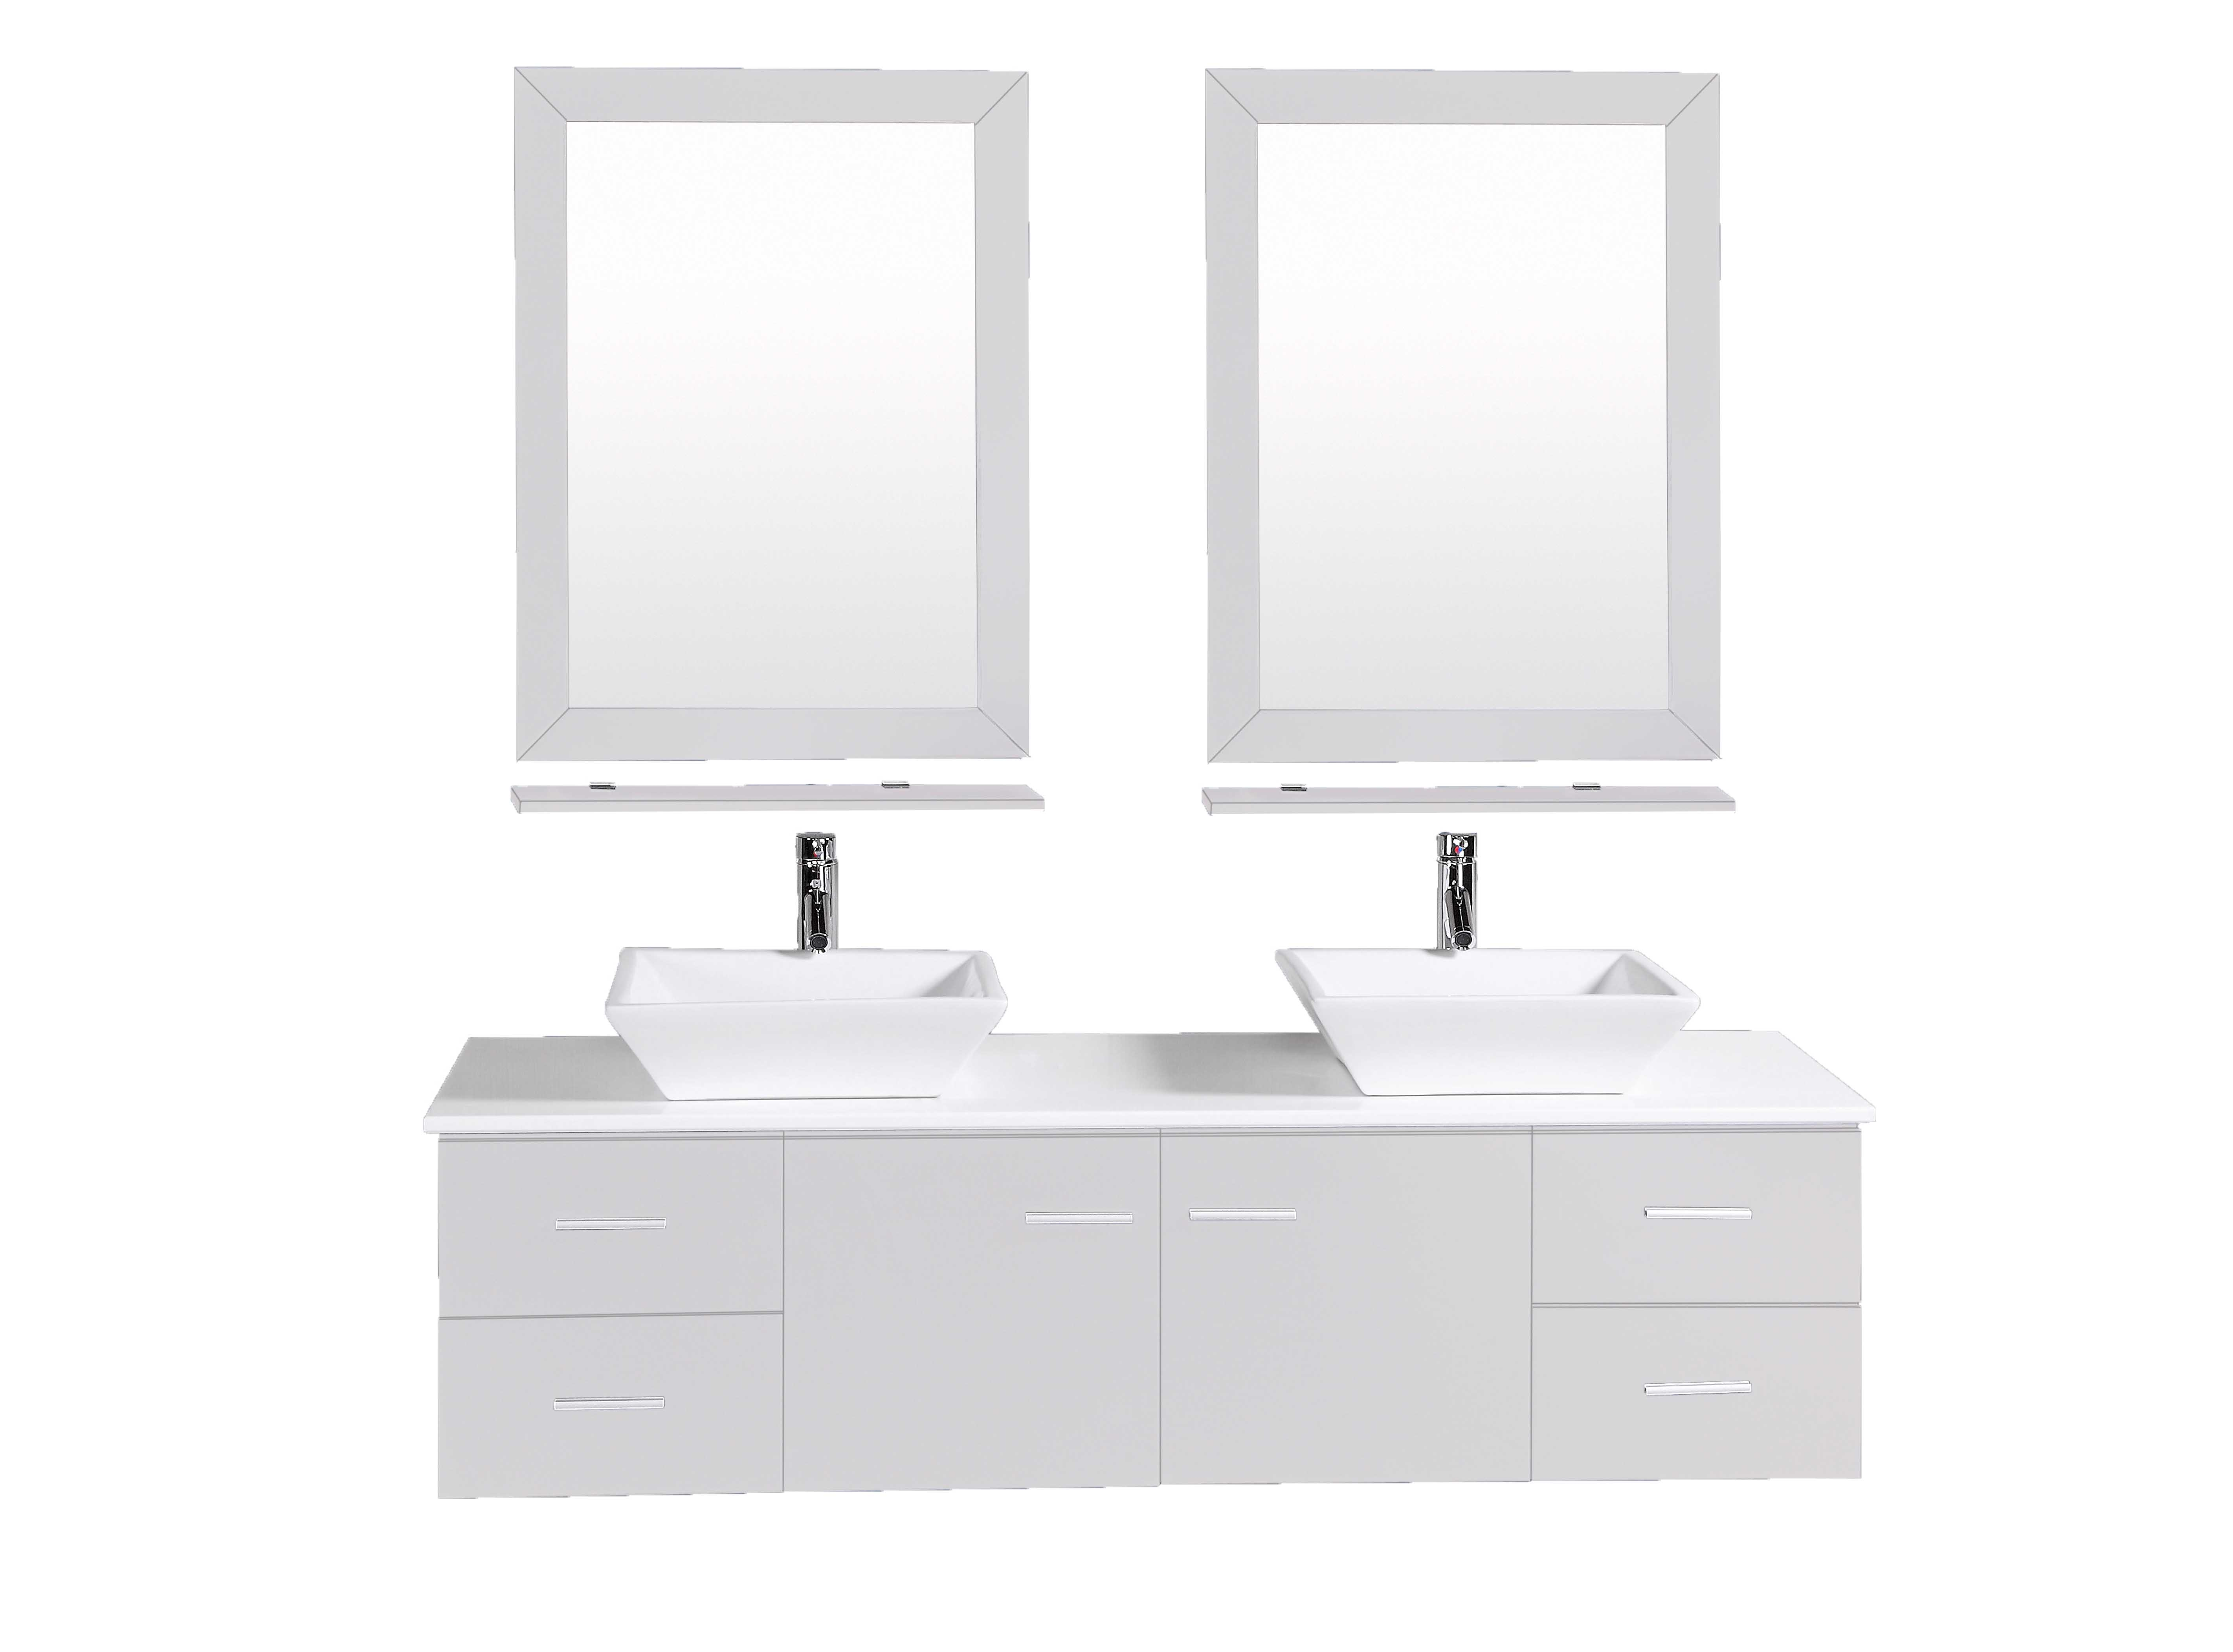 Totti Wave 72 Inch Grey Modern Double Sink Bathroom Vanity With Counter Top And Double Sinks Decors Us